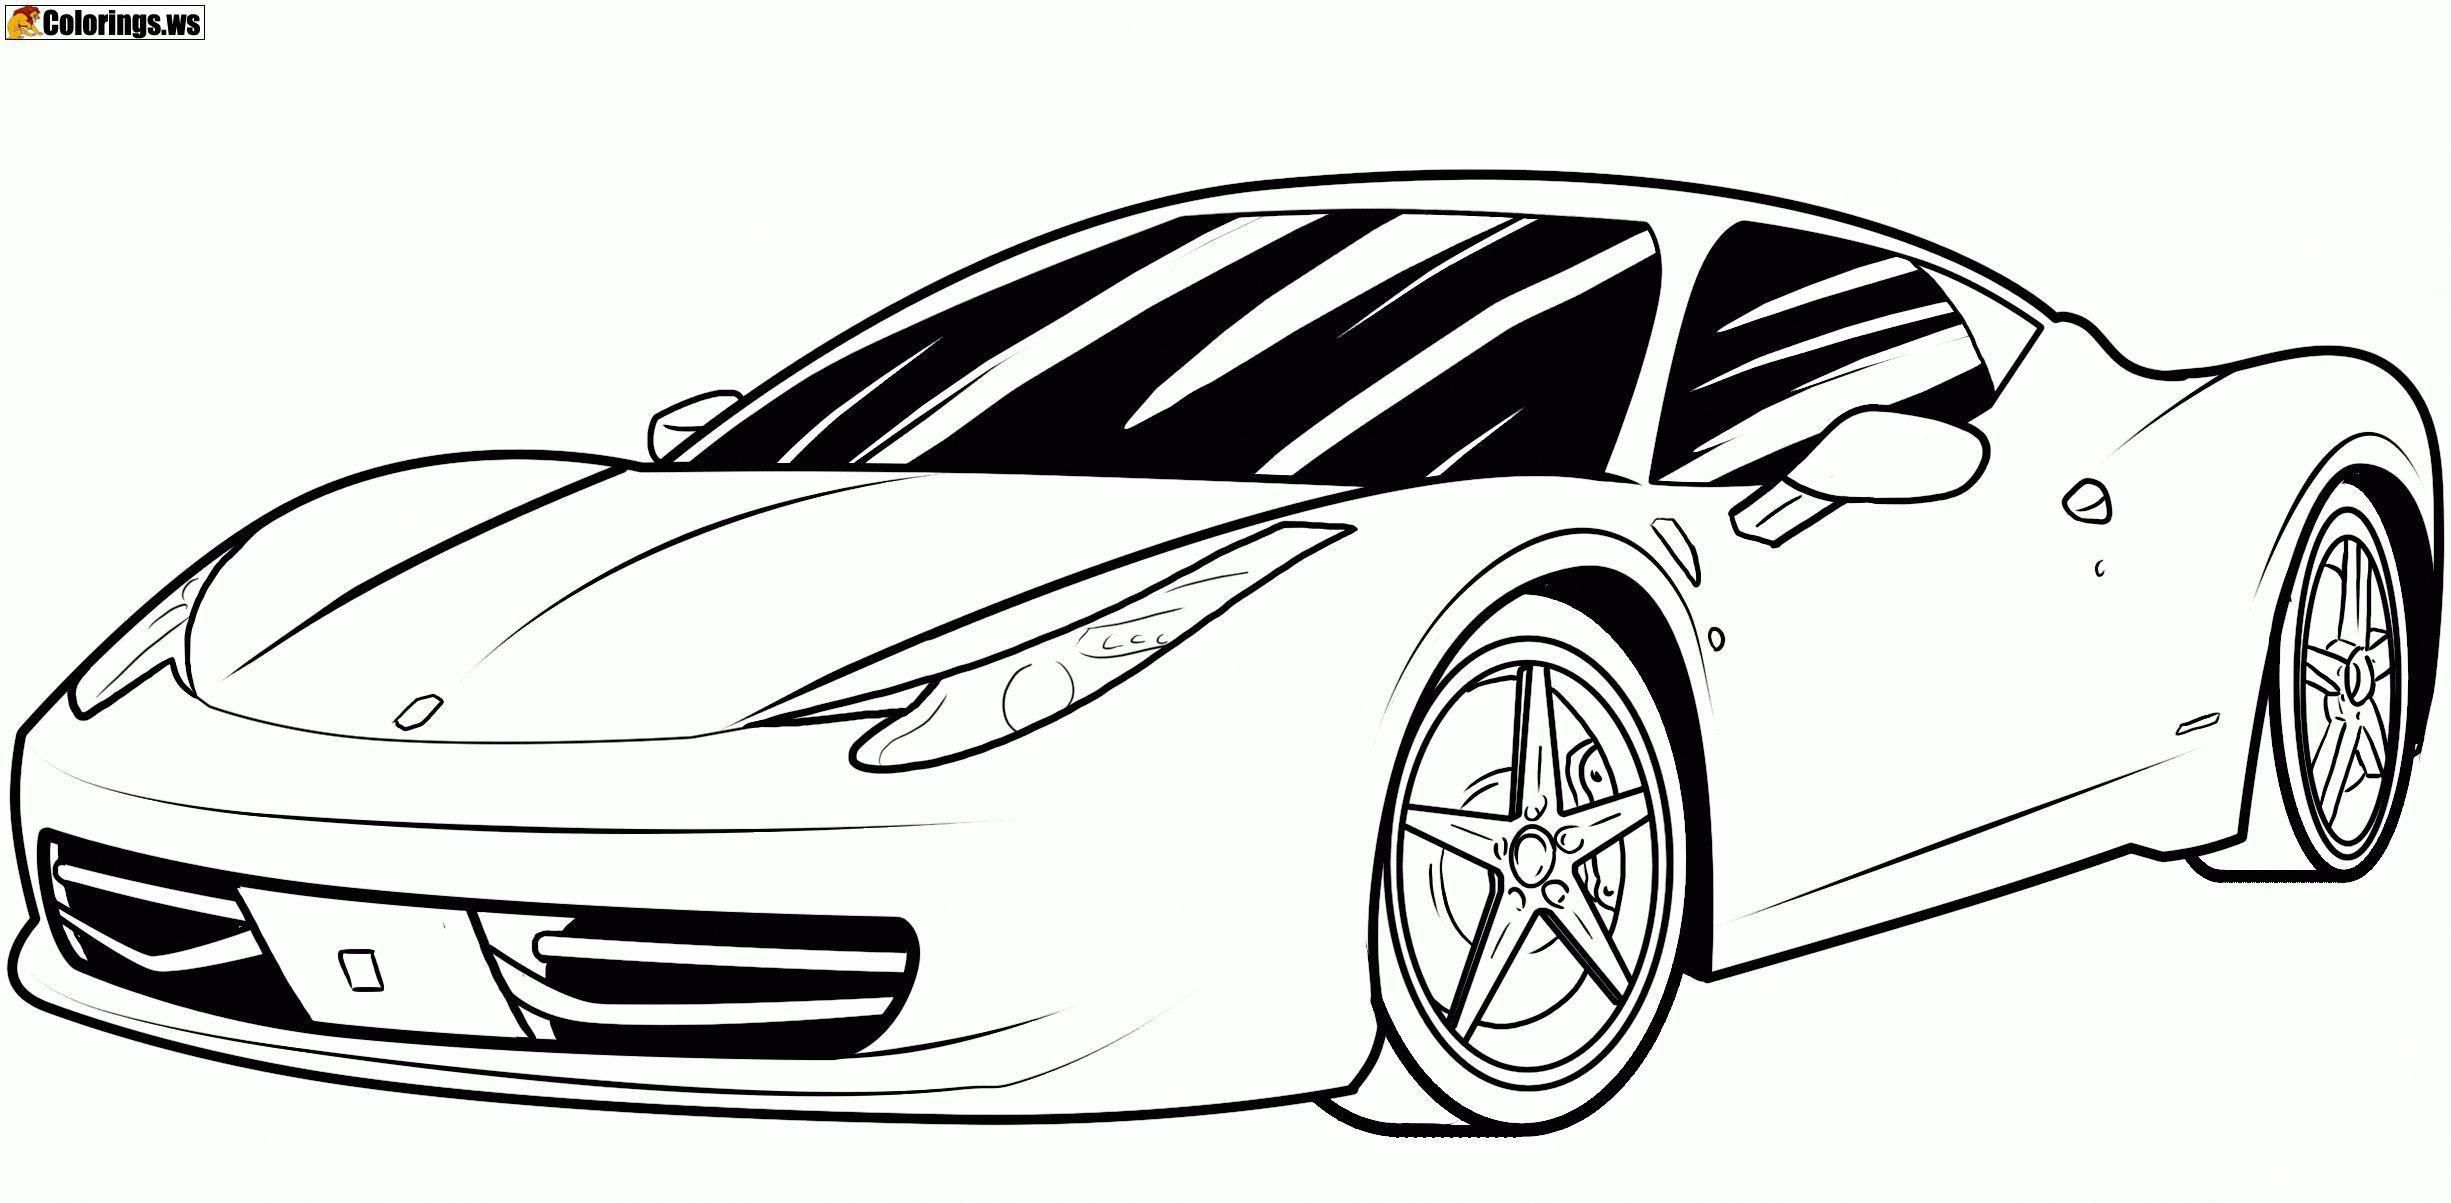 Ferrari Car Coloring Pages Car Coloring Pages In The Past The Electrics Were A Relative Ausmalbilder Zum Ausdrucken Malvorlagen Zum Ausdrucken Malvorlagen